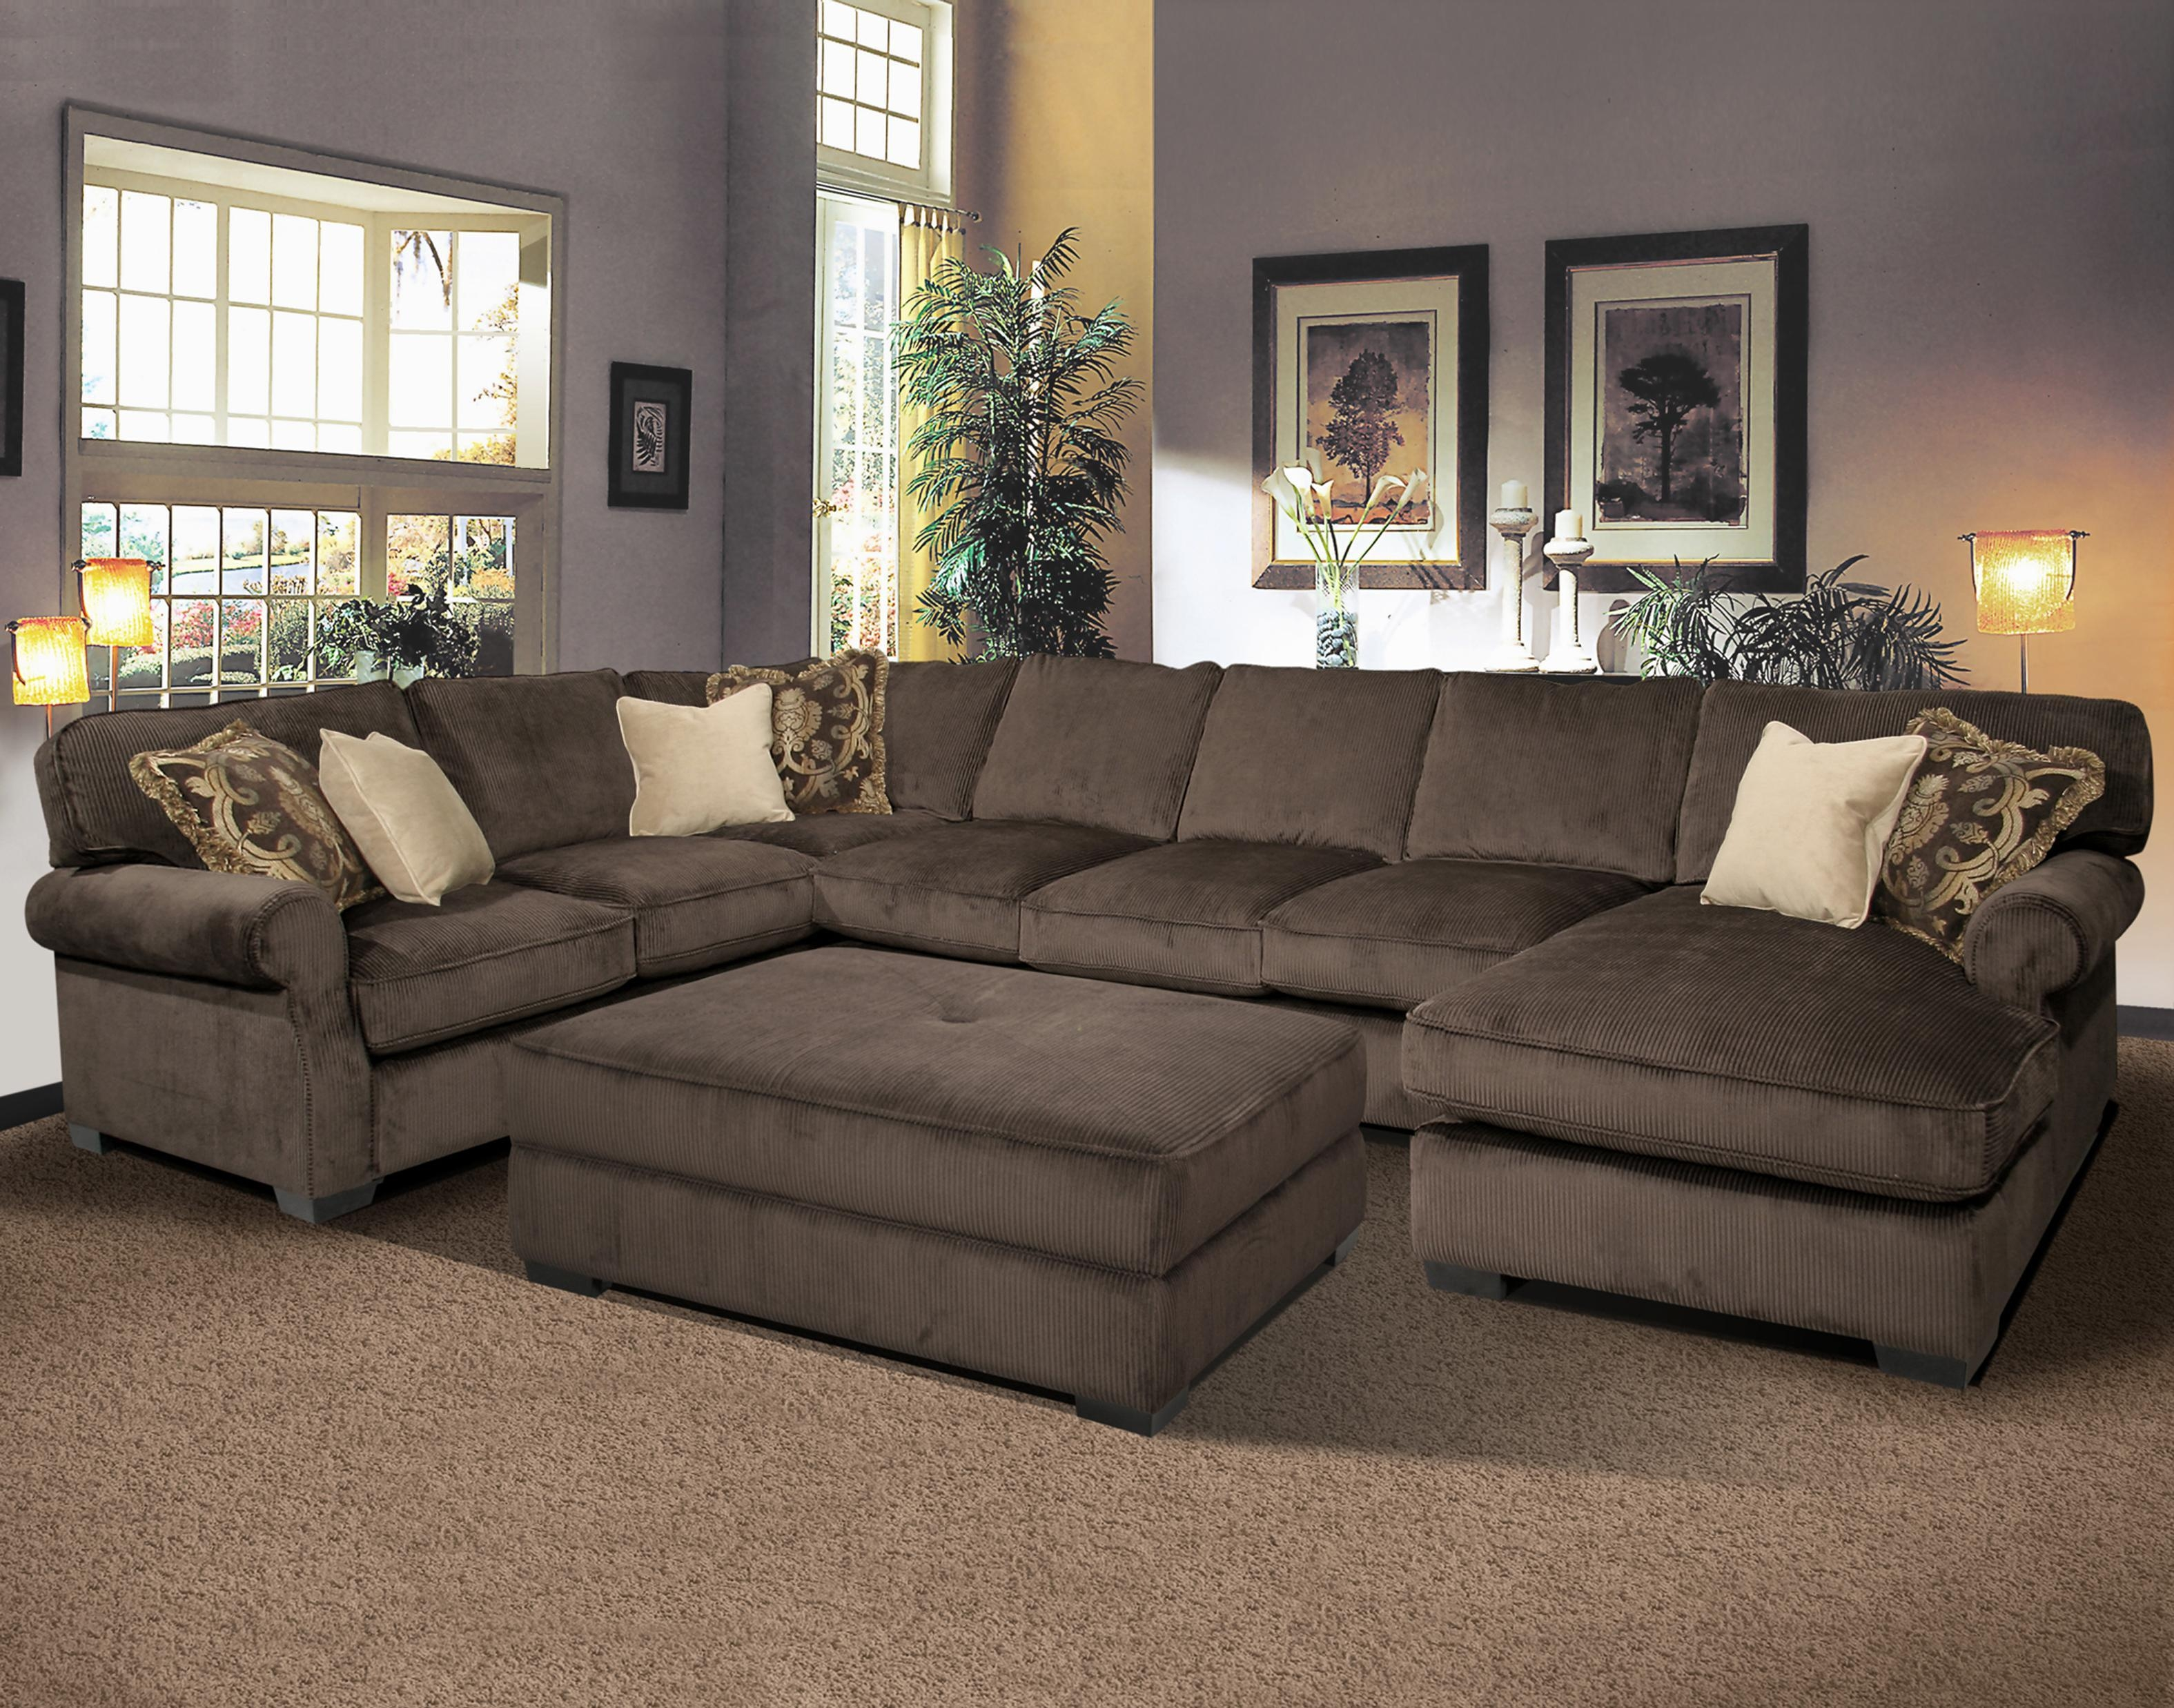 Furniture: Robert Michael Furniture Sectional | Robert Michaels With Down Filled Sofas And Sectionals (Image 5 of 15)